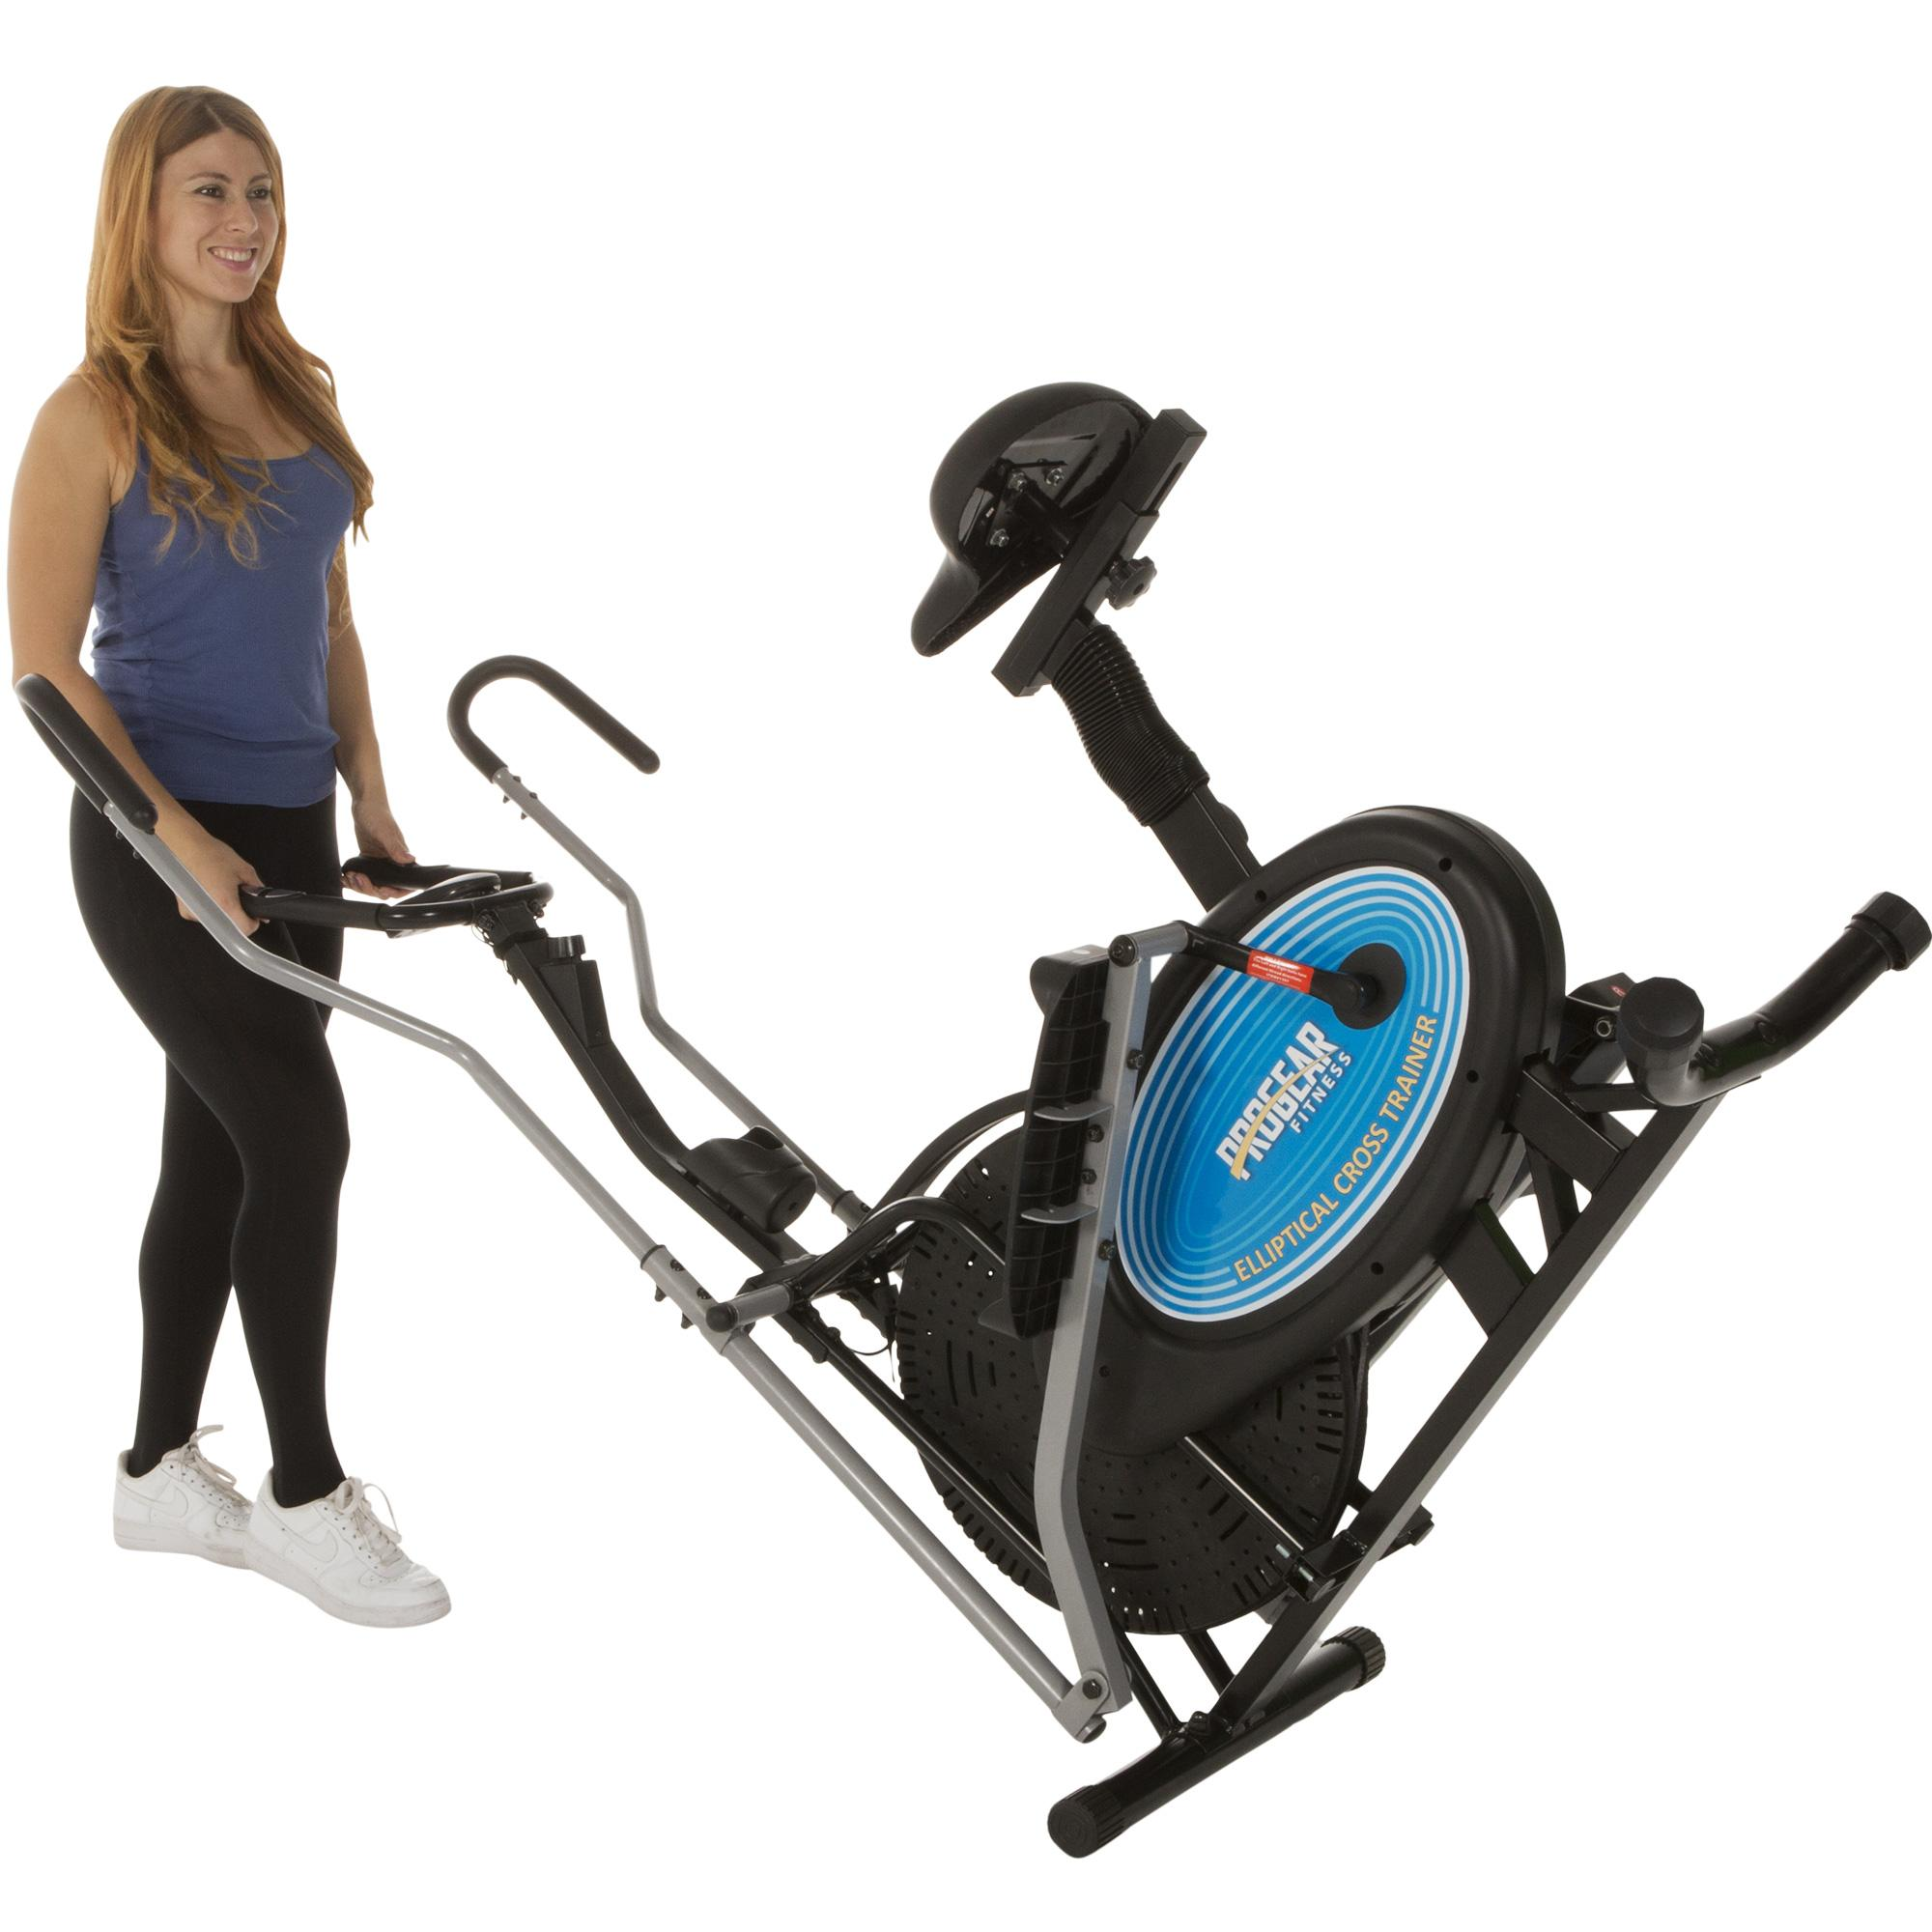 Elliptical Sit Down Bike: Amazon.com : ProGear 400LS 2 Dual Trainer Elliptical